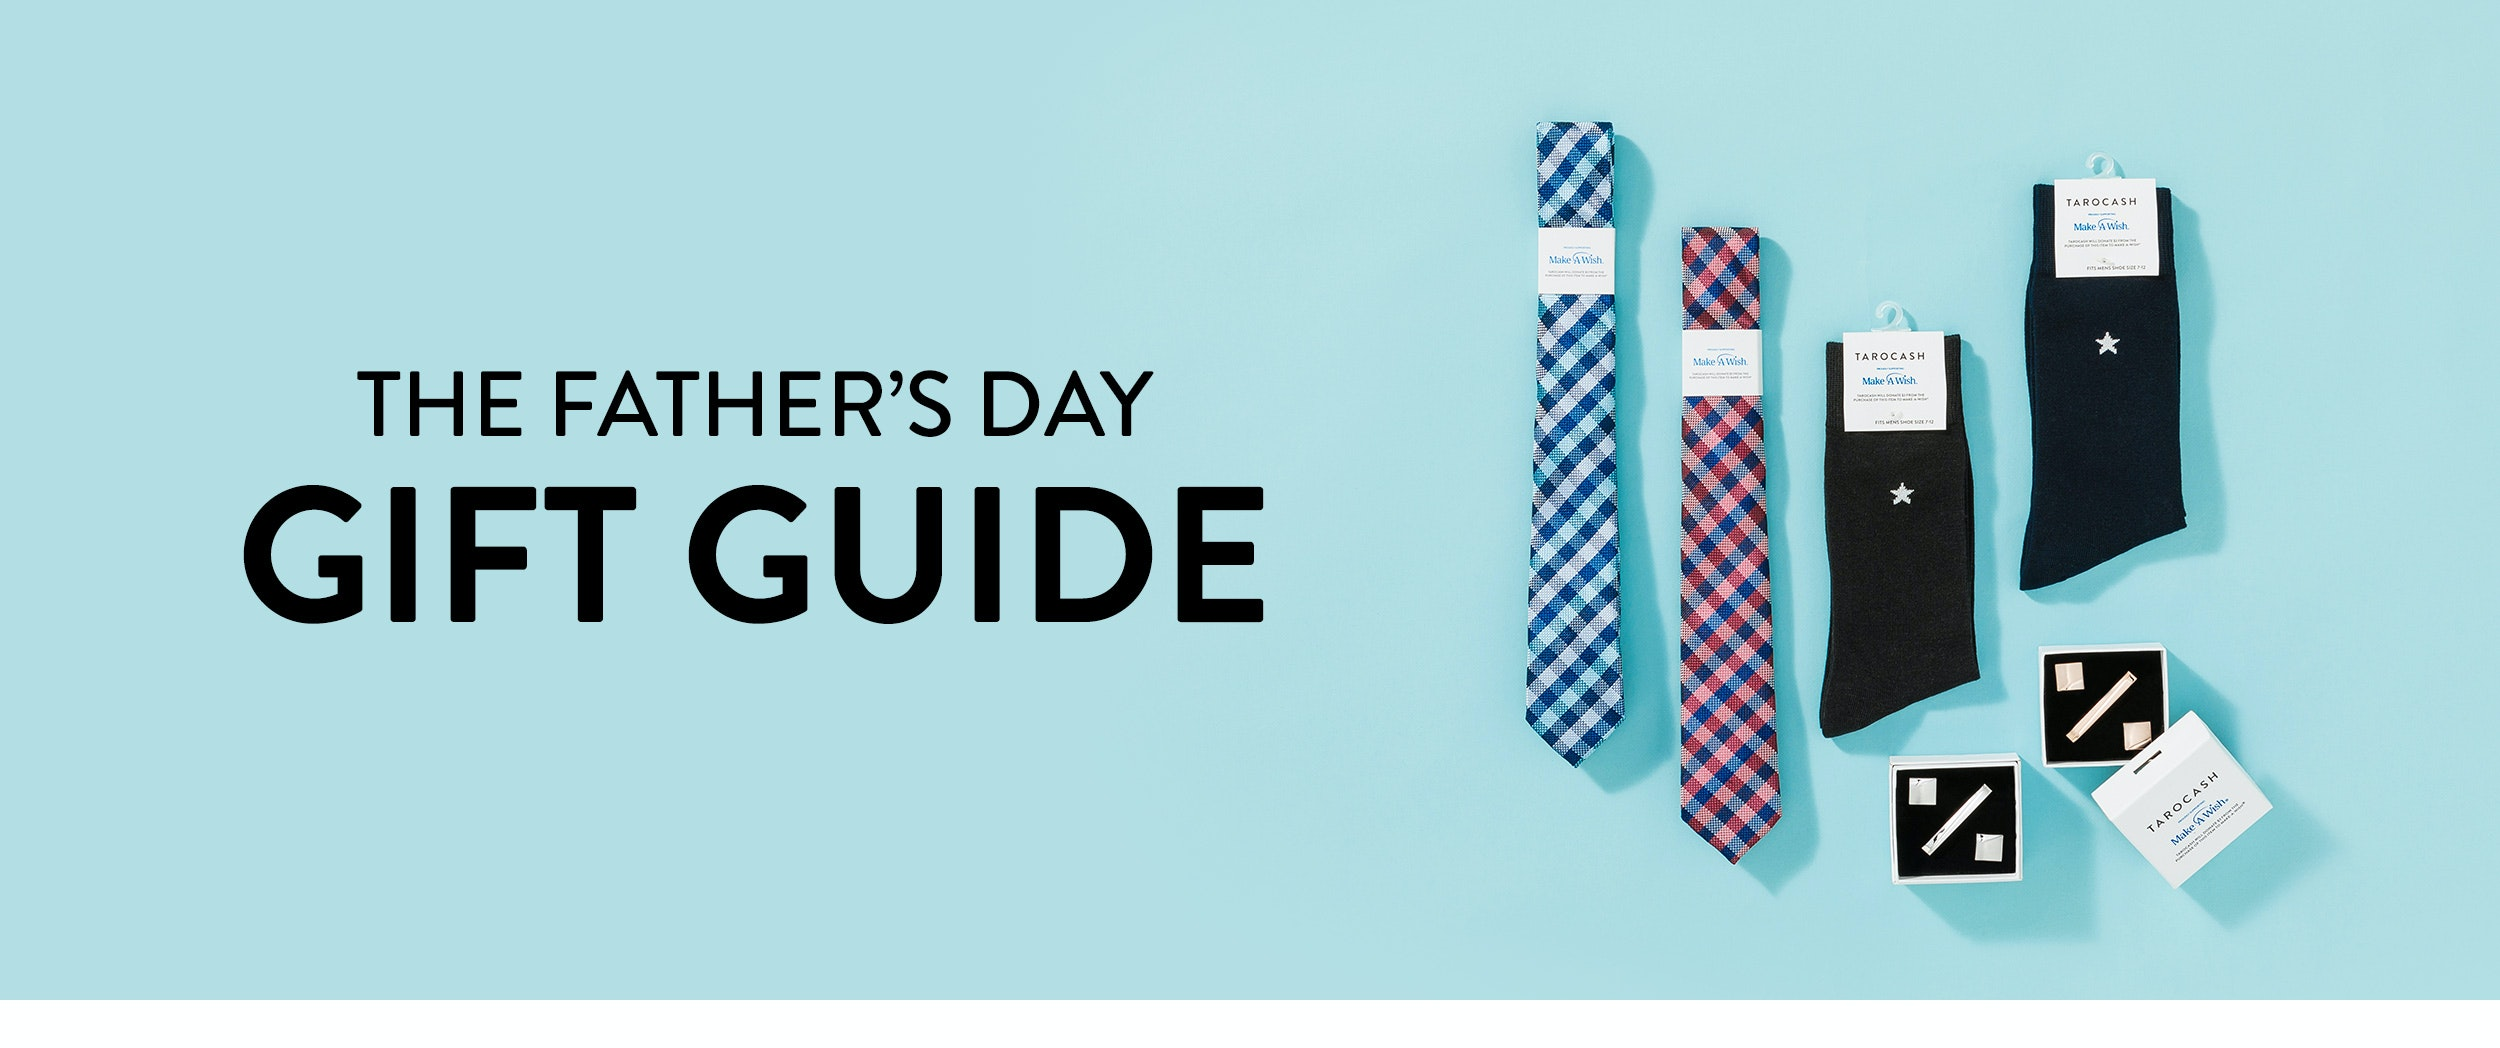 The Tarocash Fathers day Gift Guide